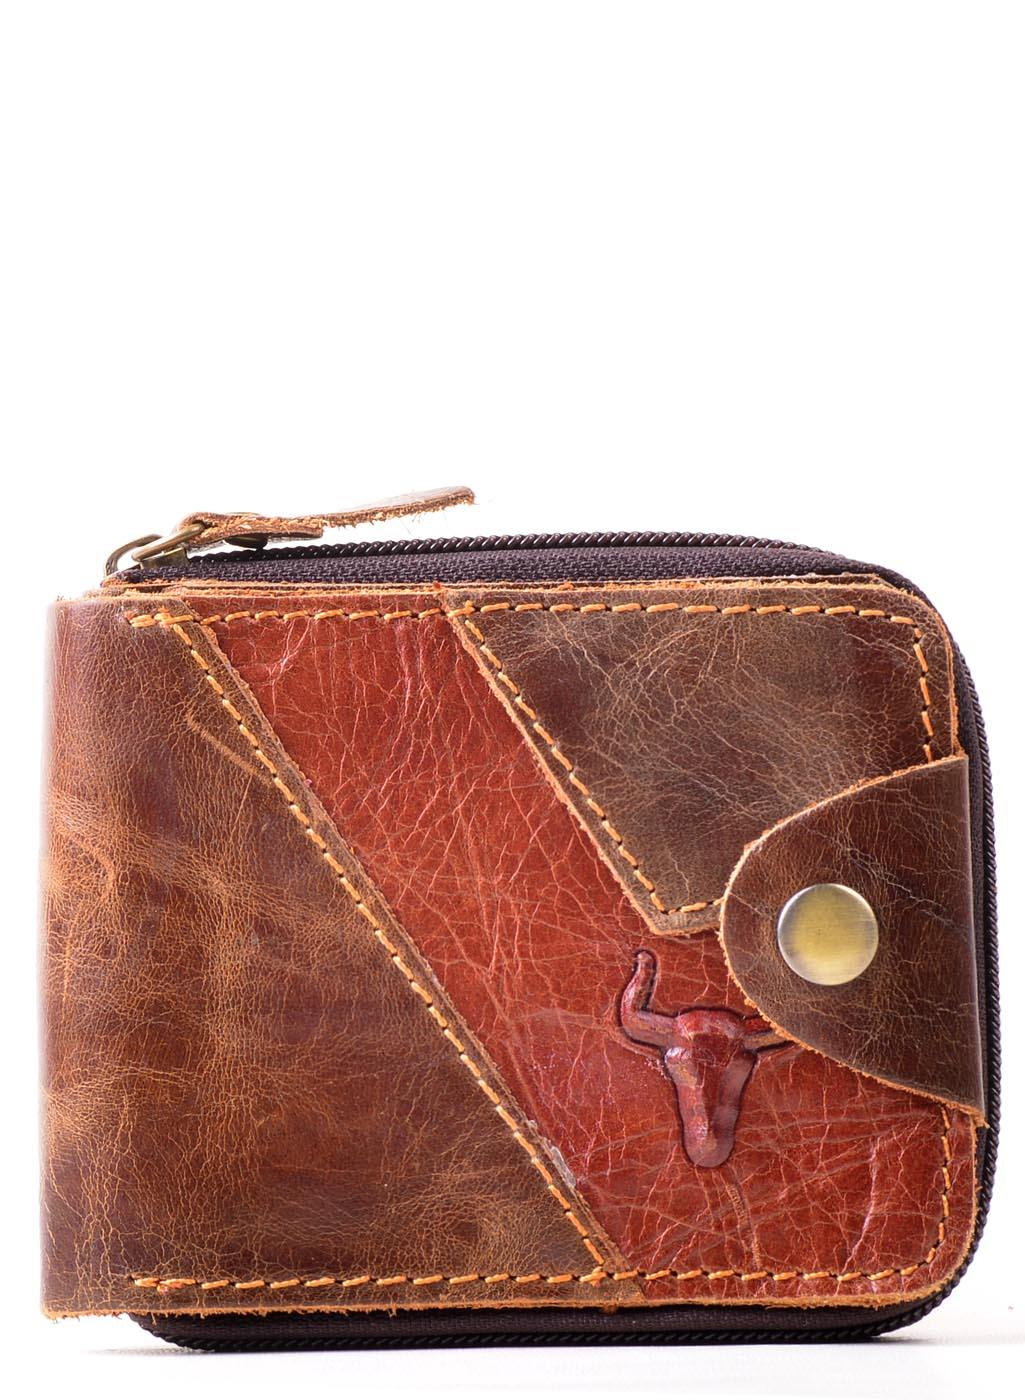 EthniCache Wallet Classy Handmade Pure Leather Wallet